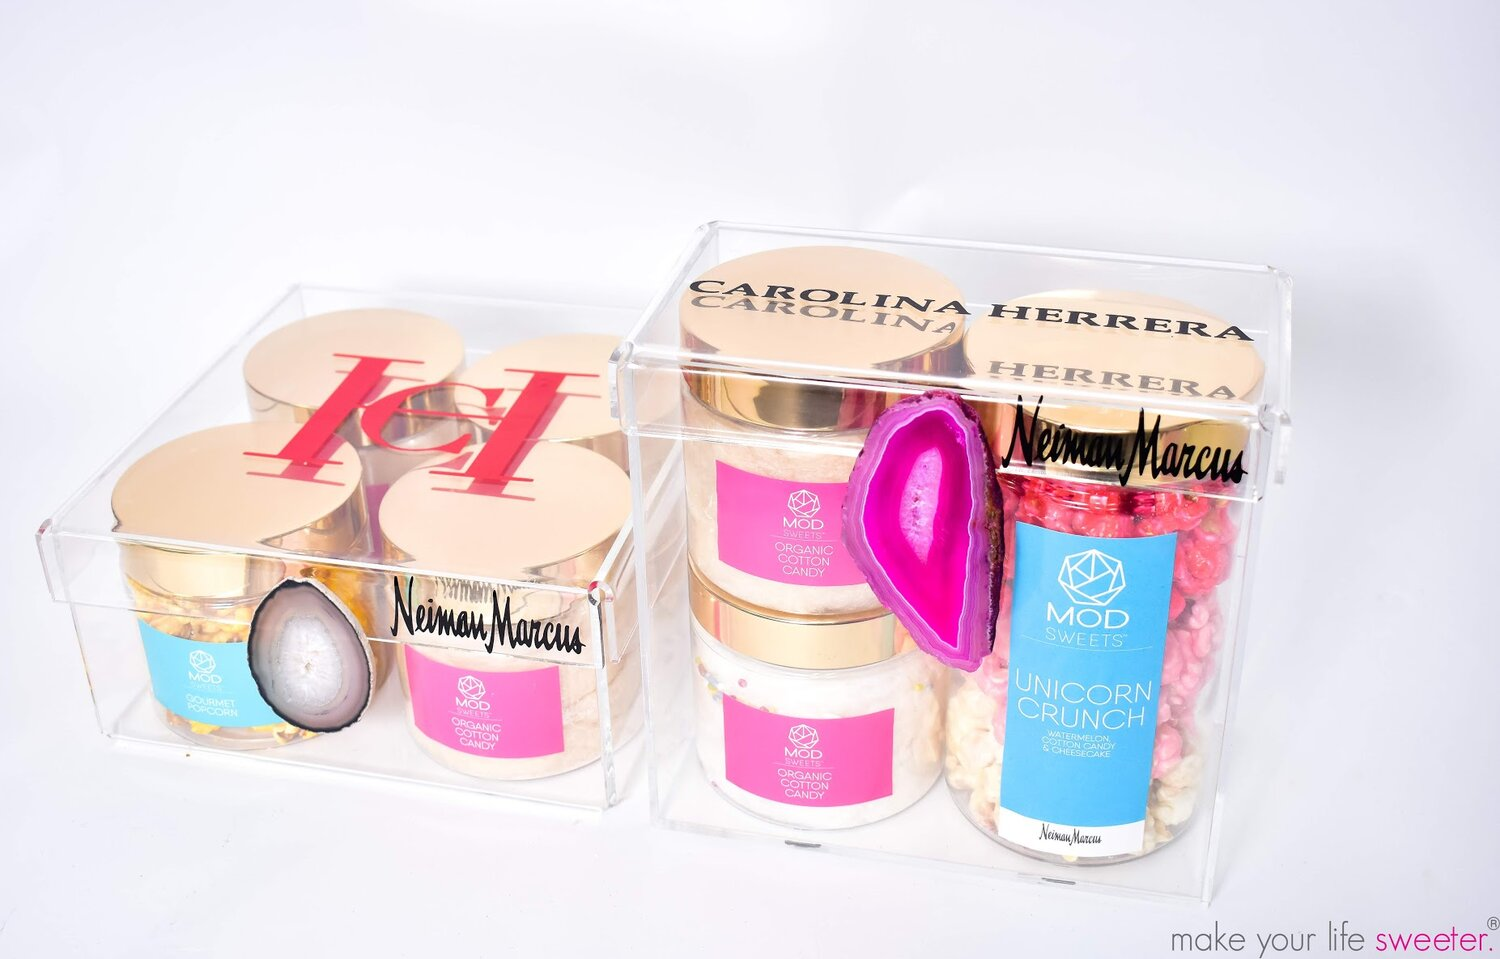 MODSWEETS CUSTOM KEEPSAKE BOX FOR CAROLINA HERRERA FROM NEIMAN MARCUS